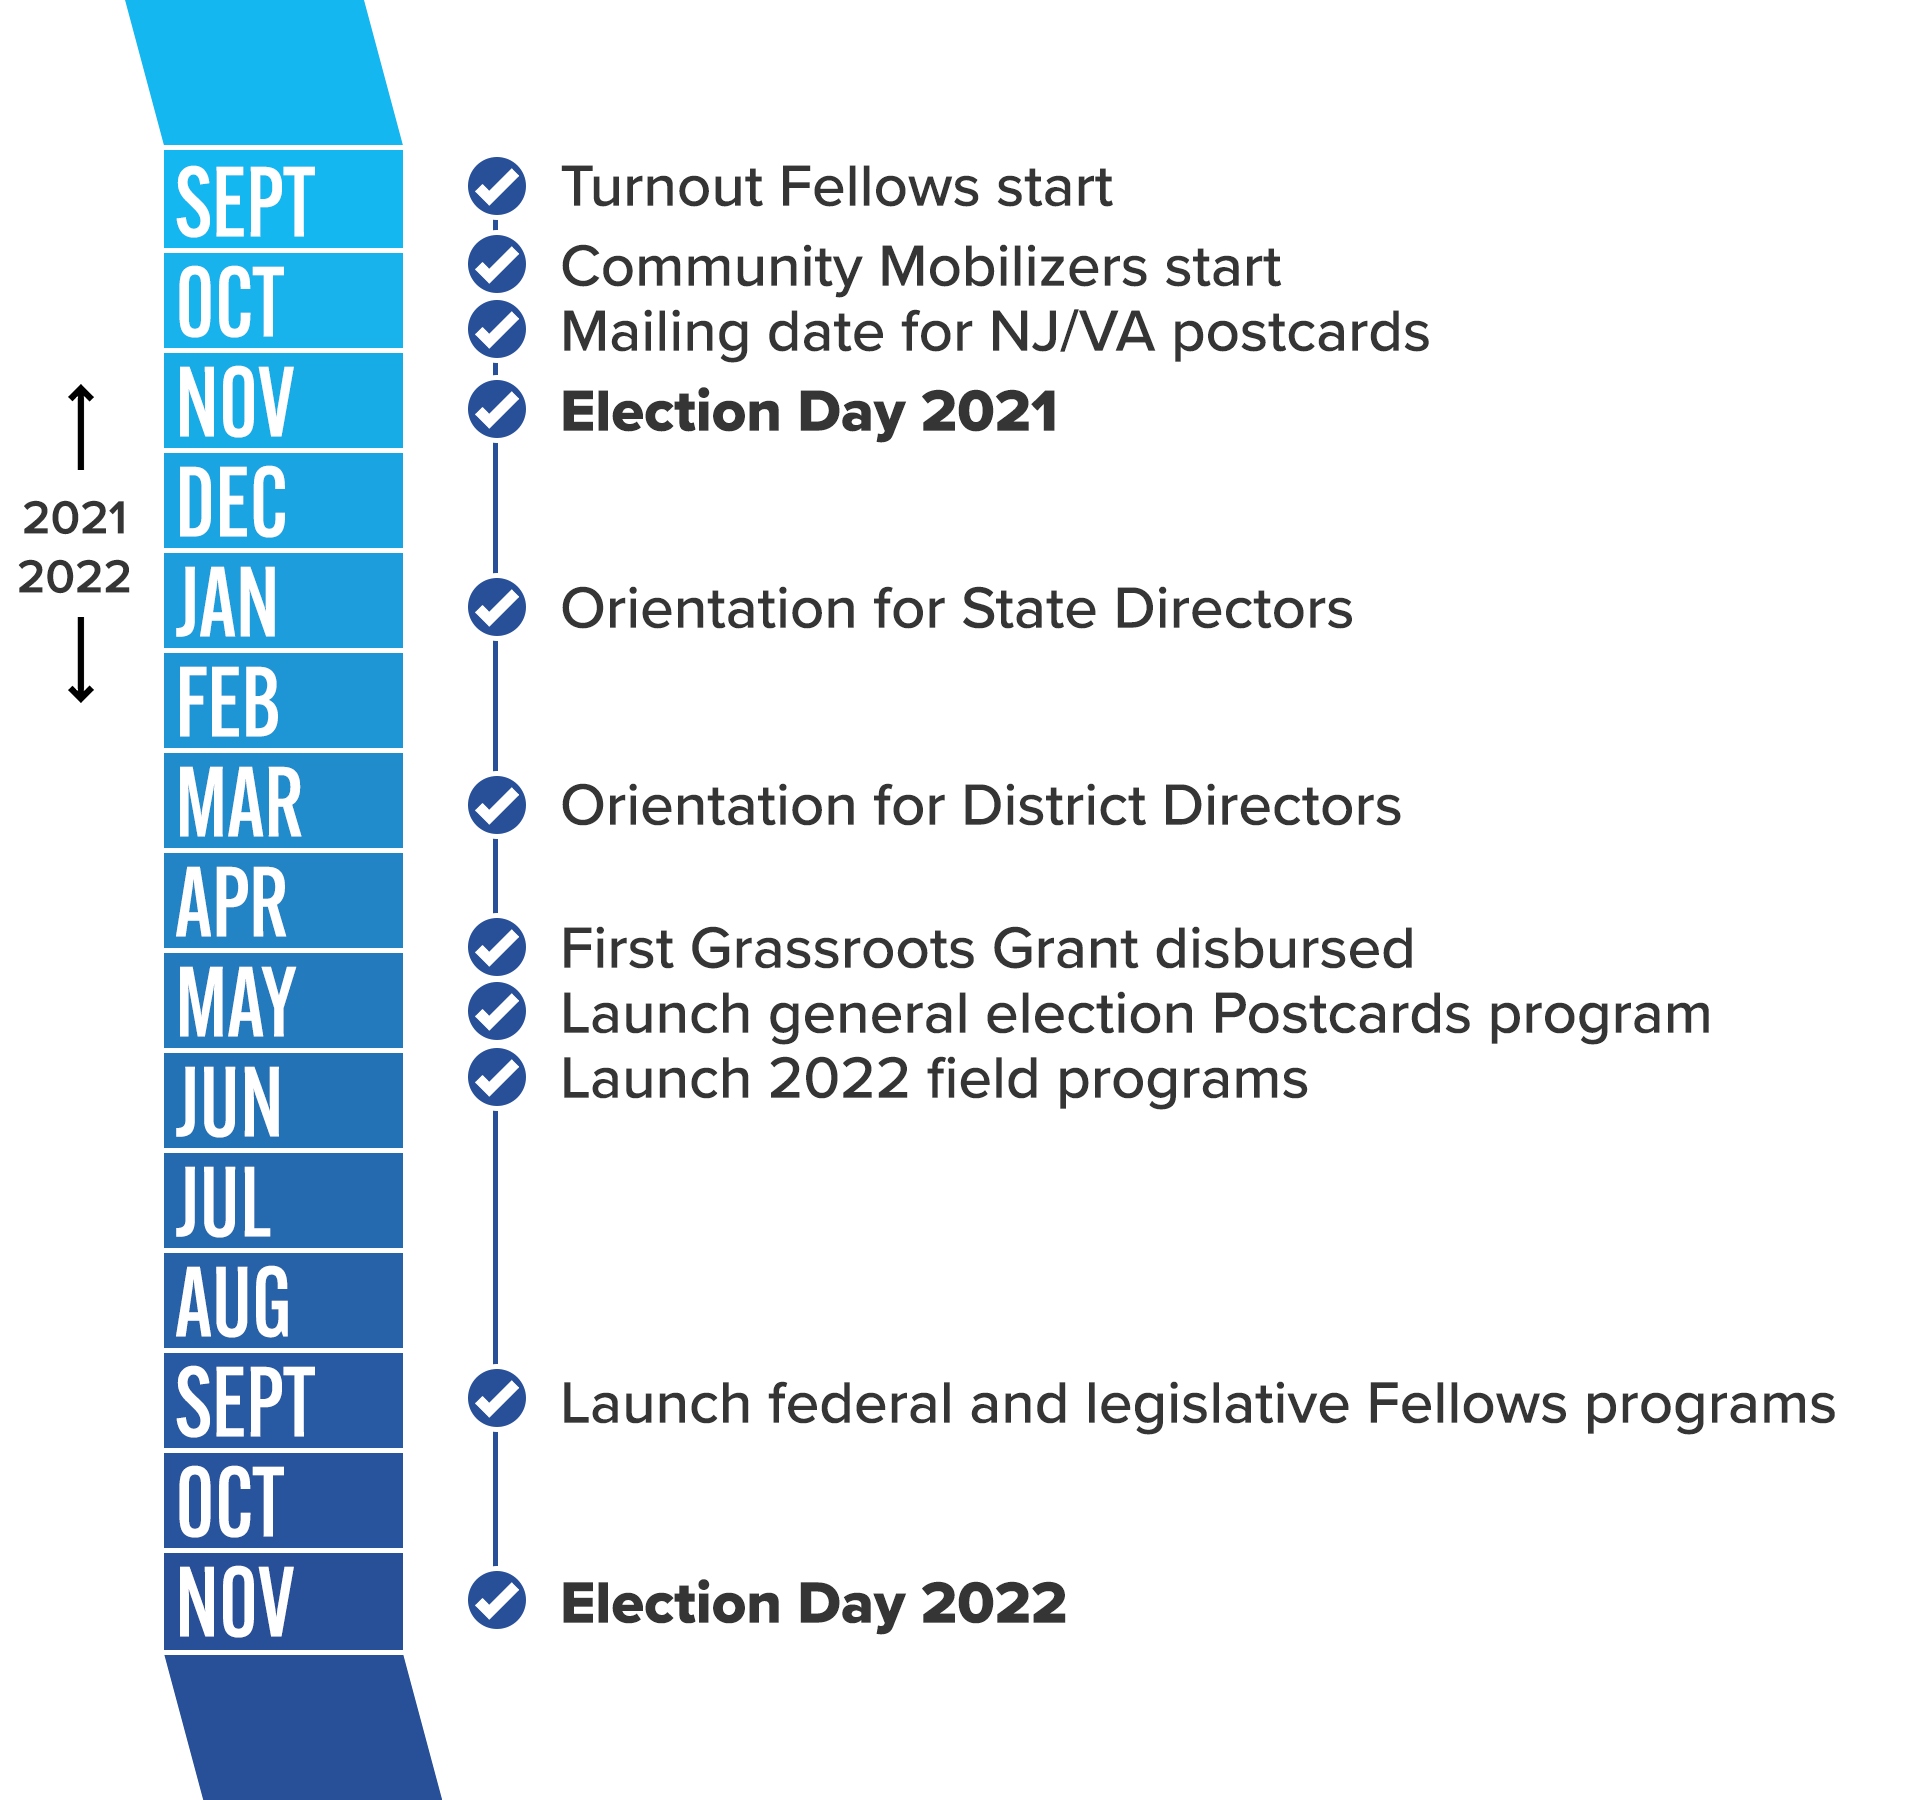 September: Turnout Fellows start. October: Community Mobilizers start, mail NJ/VA postcards. November: Election Day 2021. January 2022: Orientation for State Directors. March 2022: Orientation for District Directors. April/May 2022: First Grassroots Grant disbursed. May 2022: Launch general election Postcards program. May/June 2022: Launch 2022 field programs. September 2022: Launch Federal and legislative Fellows. November 2022: Election Day.